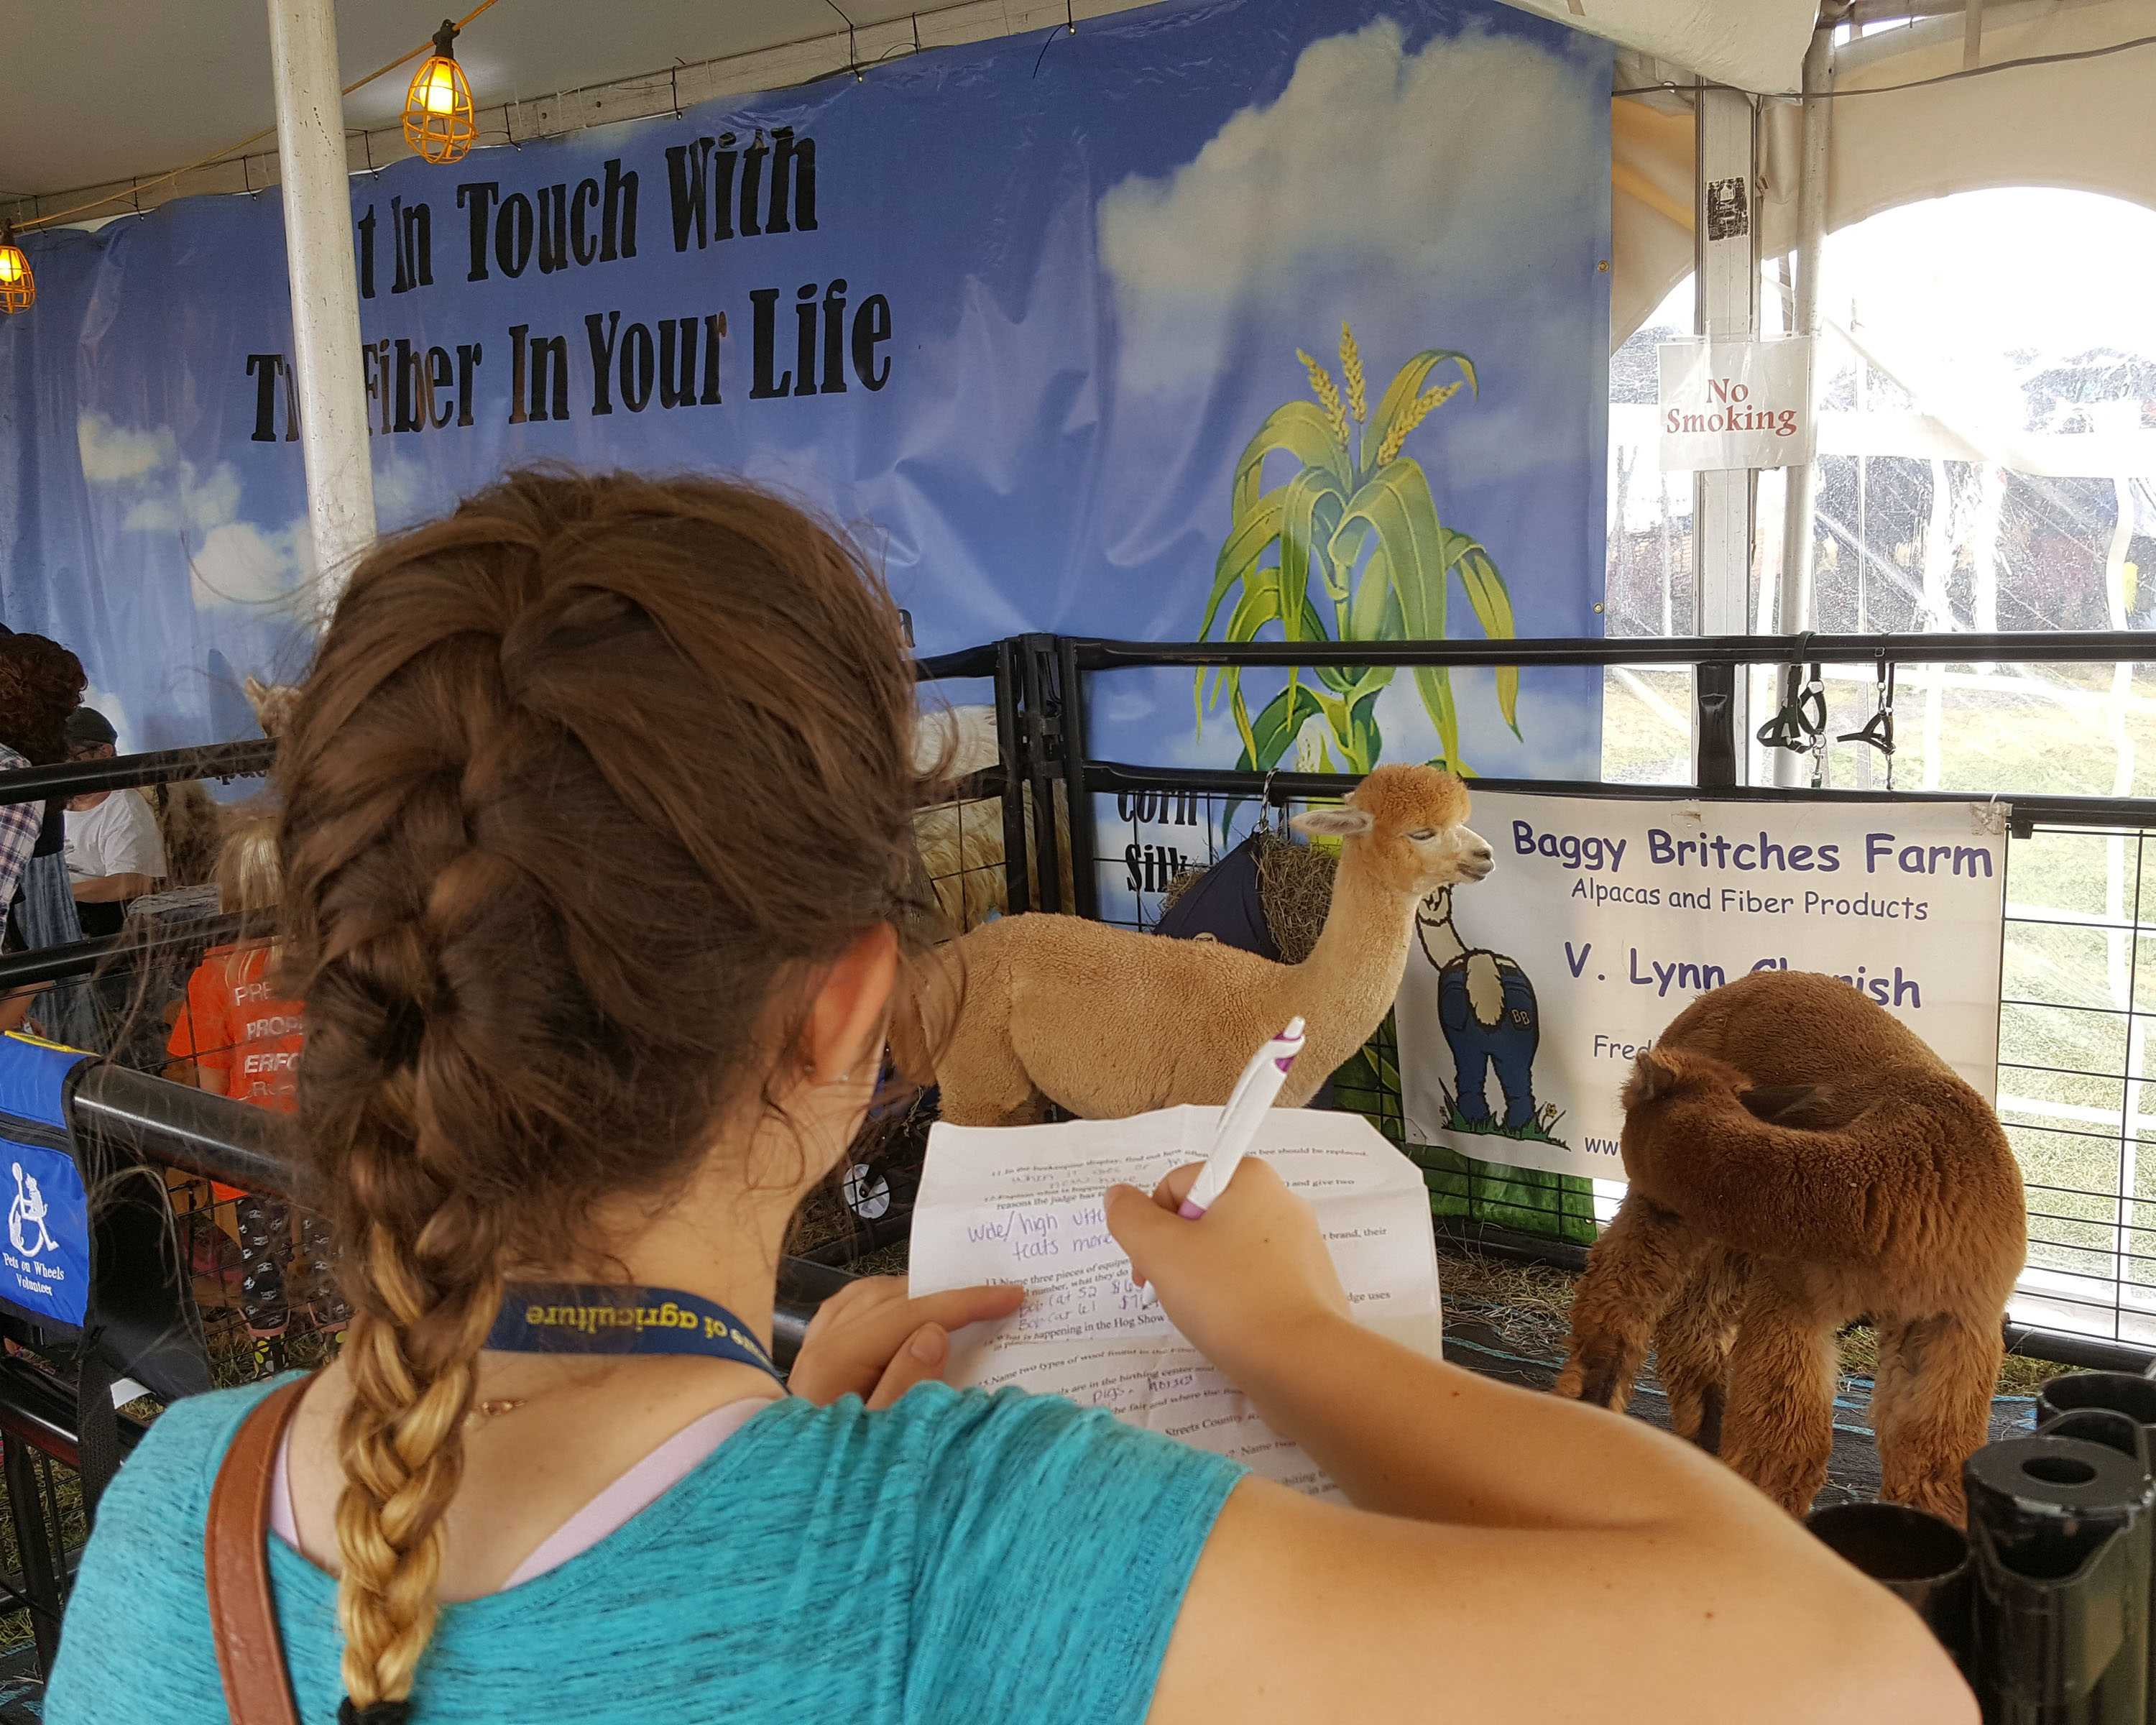 Class of 2017, senior Emily Sherwood is filling out a questionnaire asking her to name two types of wool found in the Fiber Optics tent.